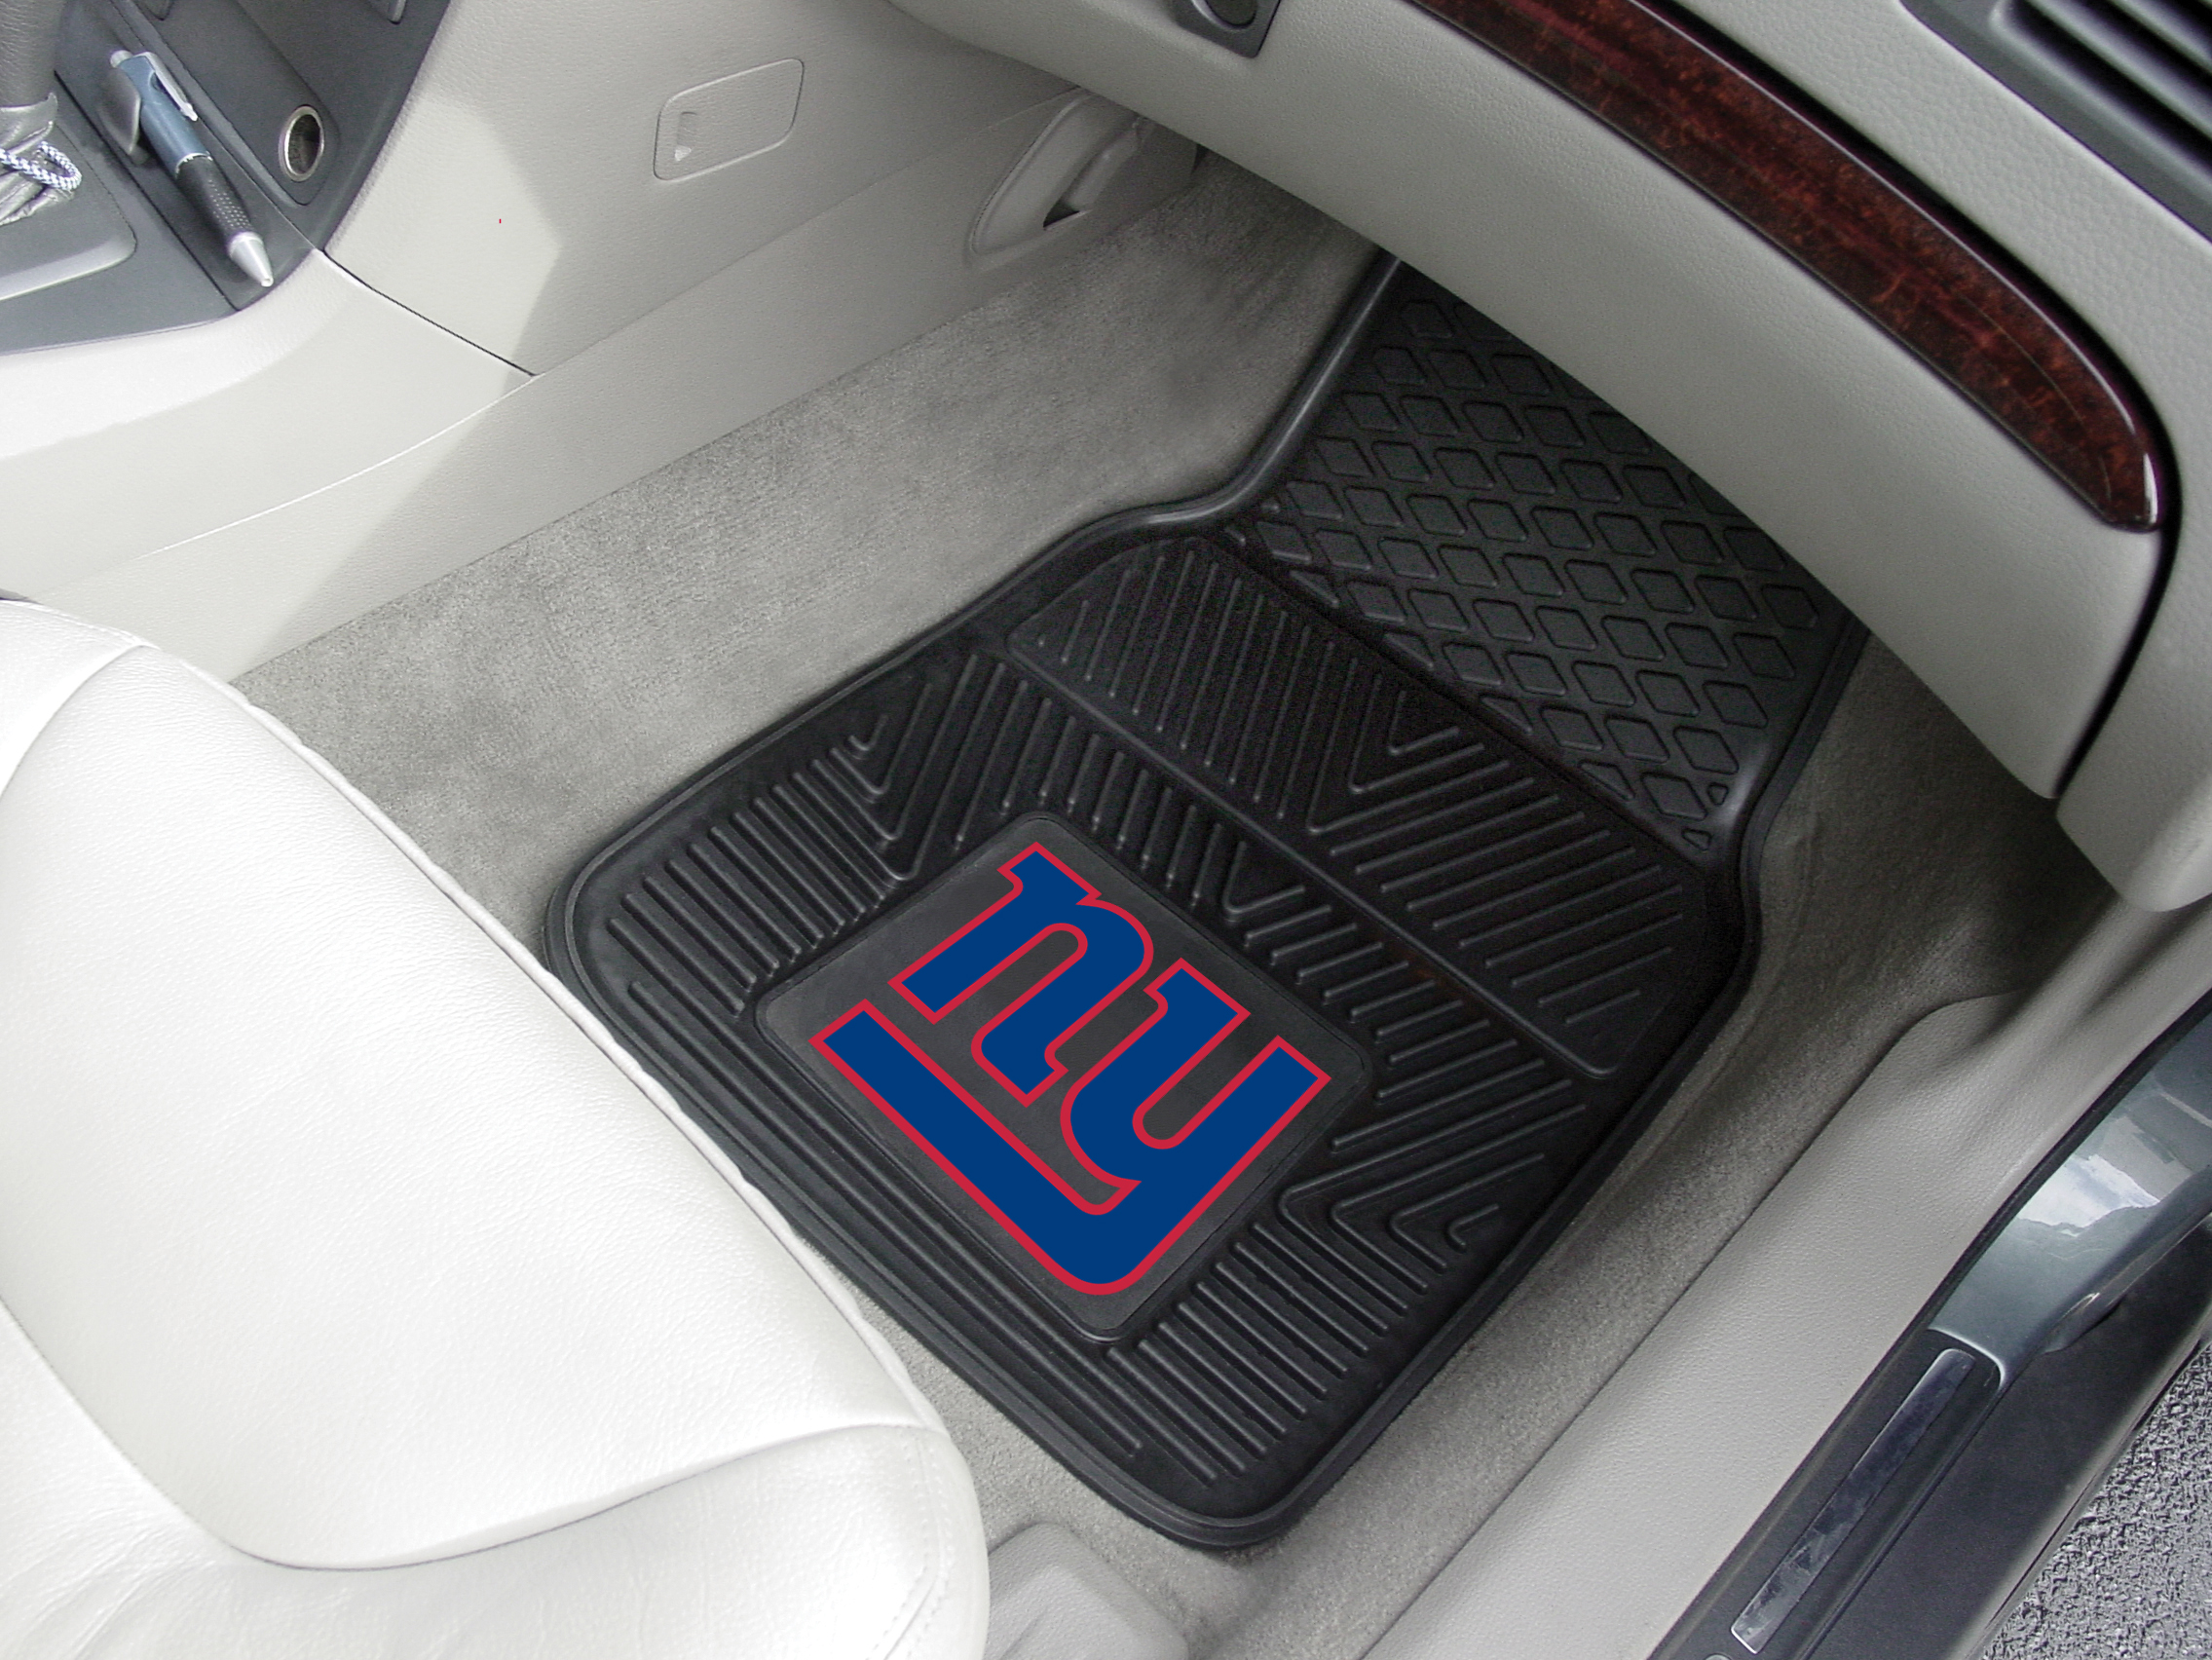 New York Giants NFL Football Logo Car Floor Mats - Heavy-Duty Vinyl